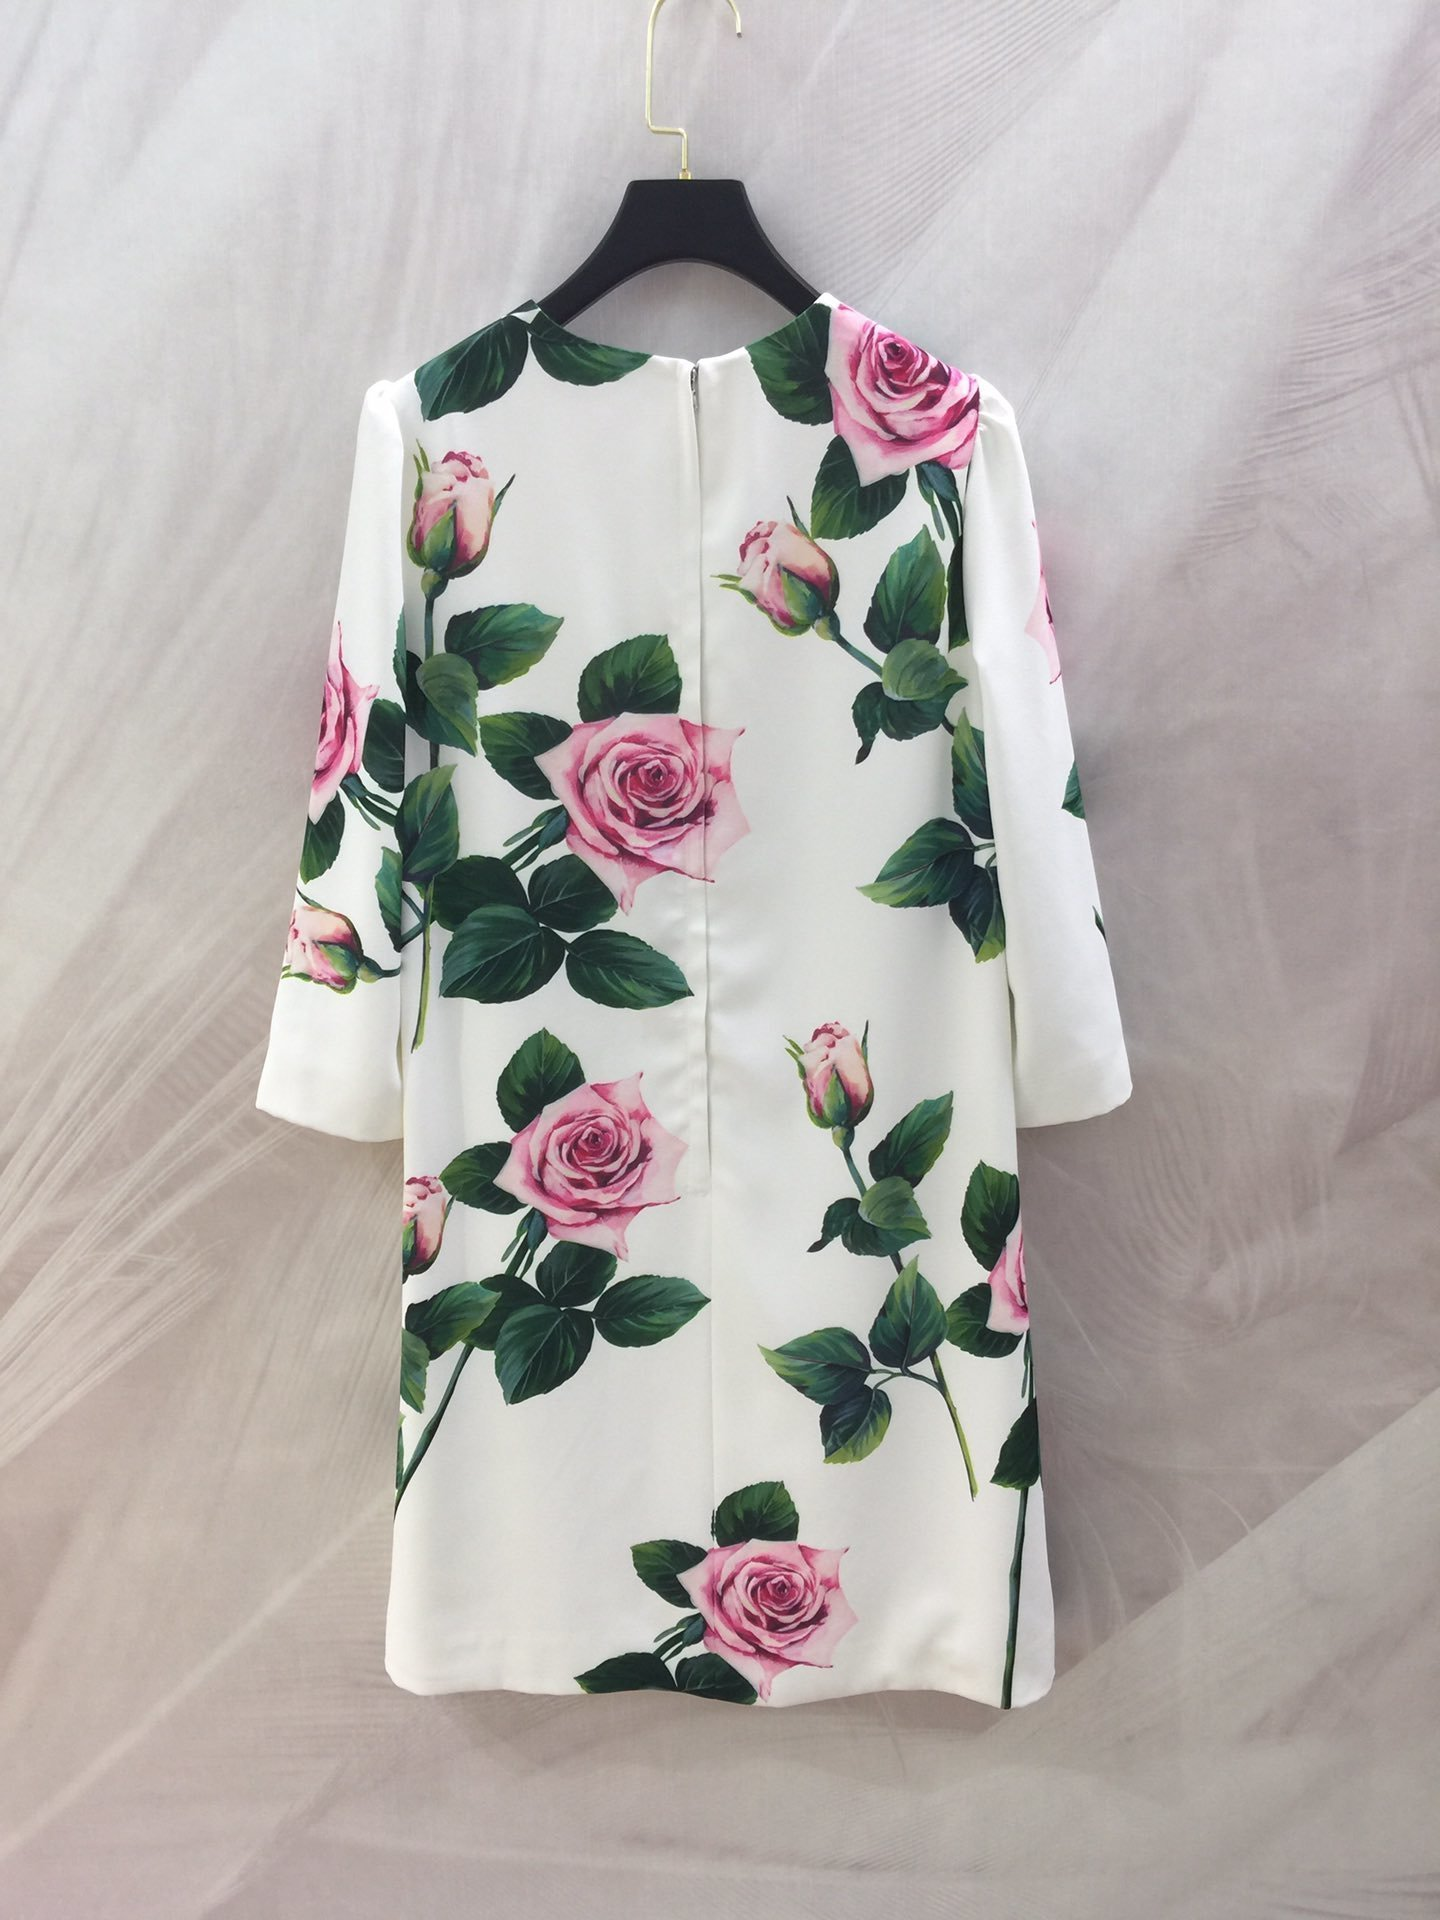 Image 3 - HH040  A new dress for early spring Welcome the coming spring.  flowerDresses   -